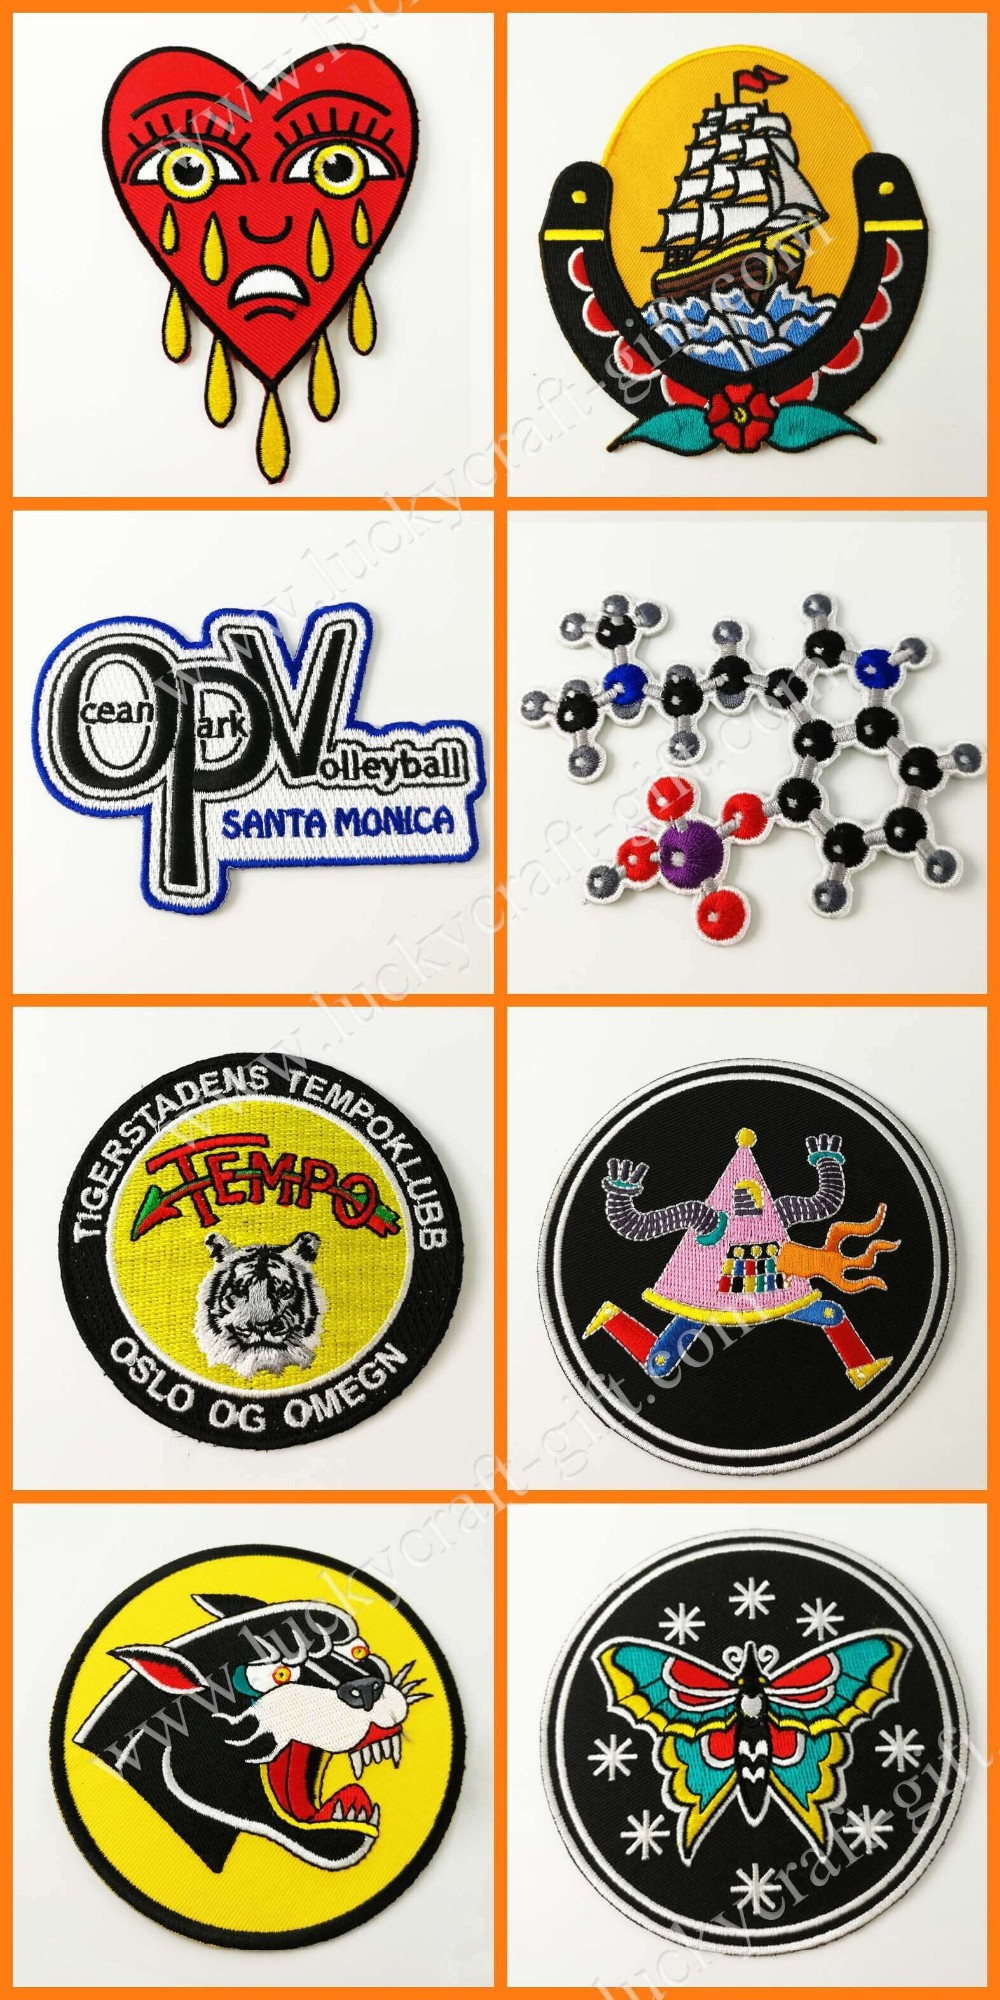 Custom Embroidered Patches Highest Quality, Merrow